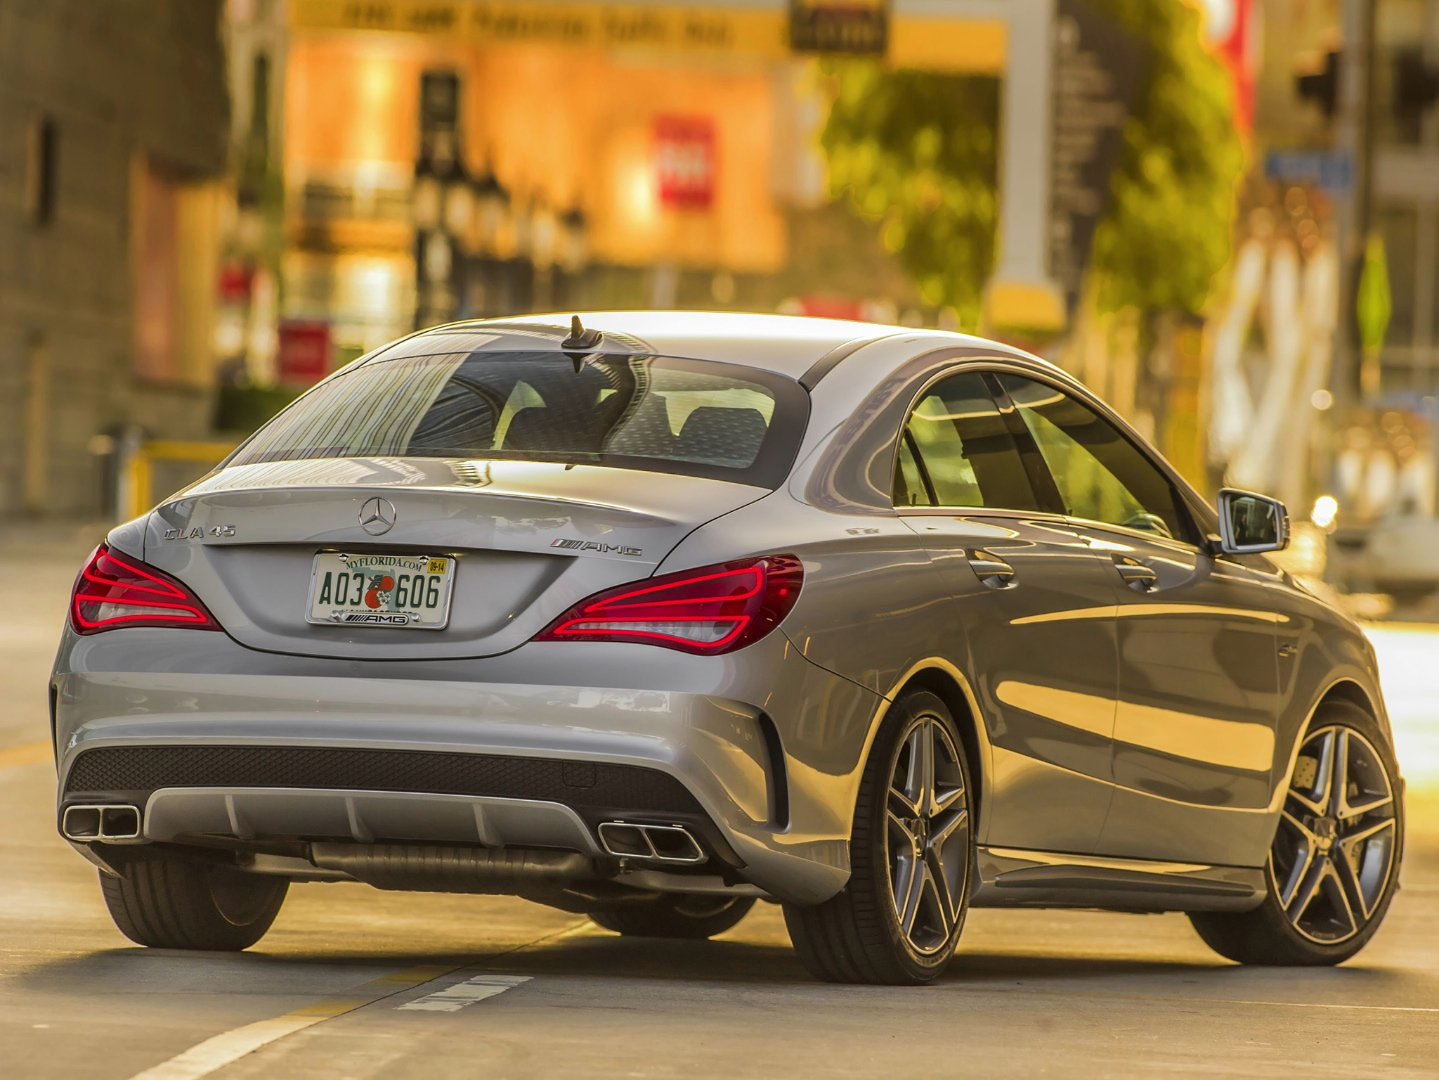 Mercedes benz usa plans new dealers training session in for Mercedes benz ua